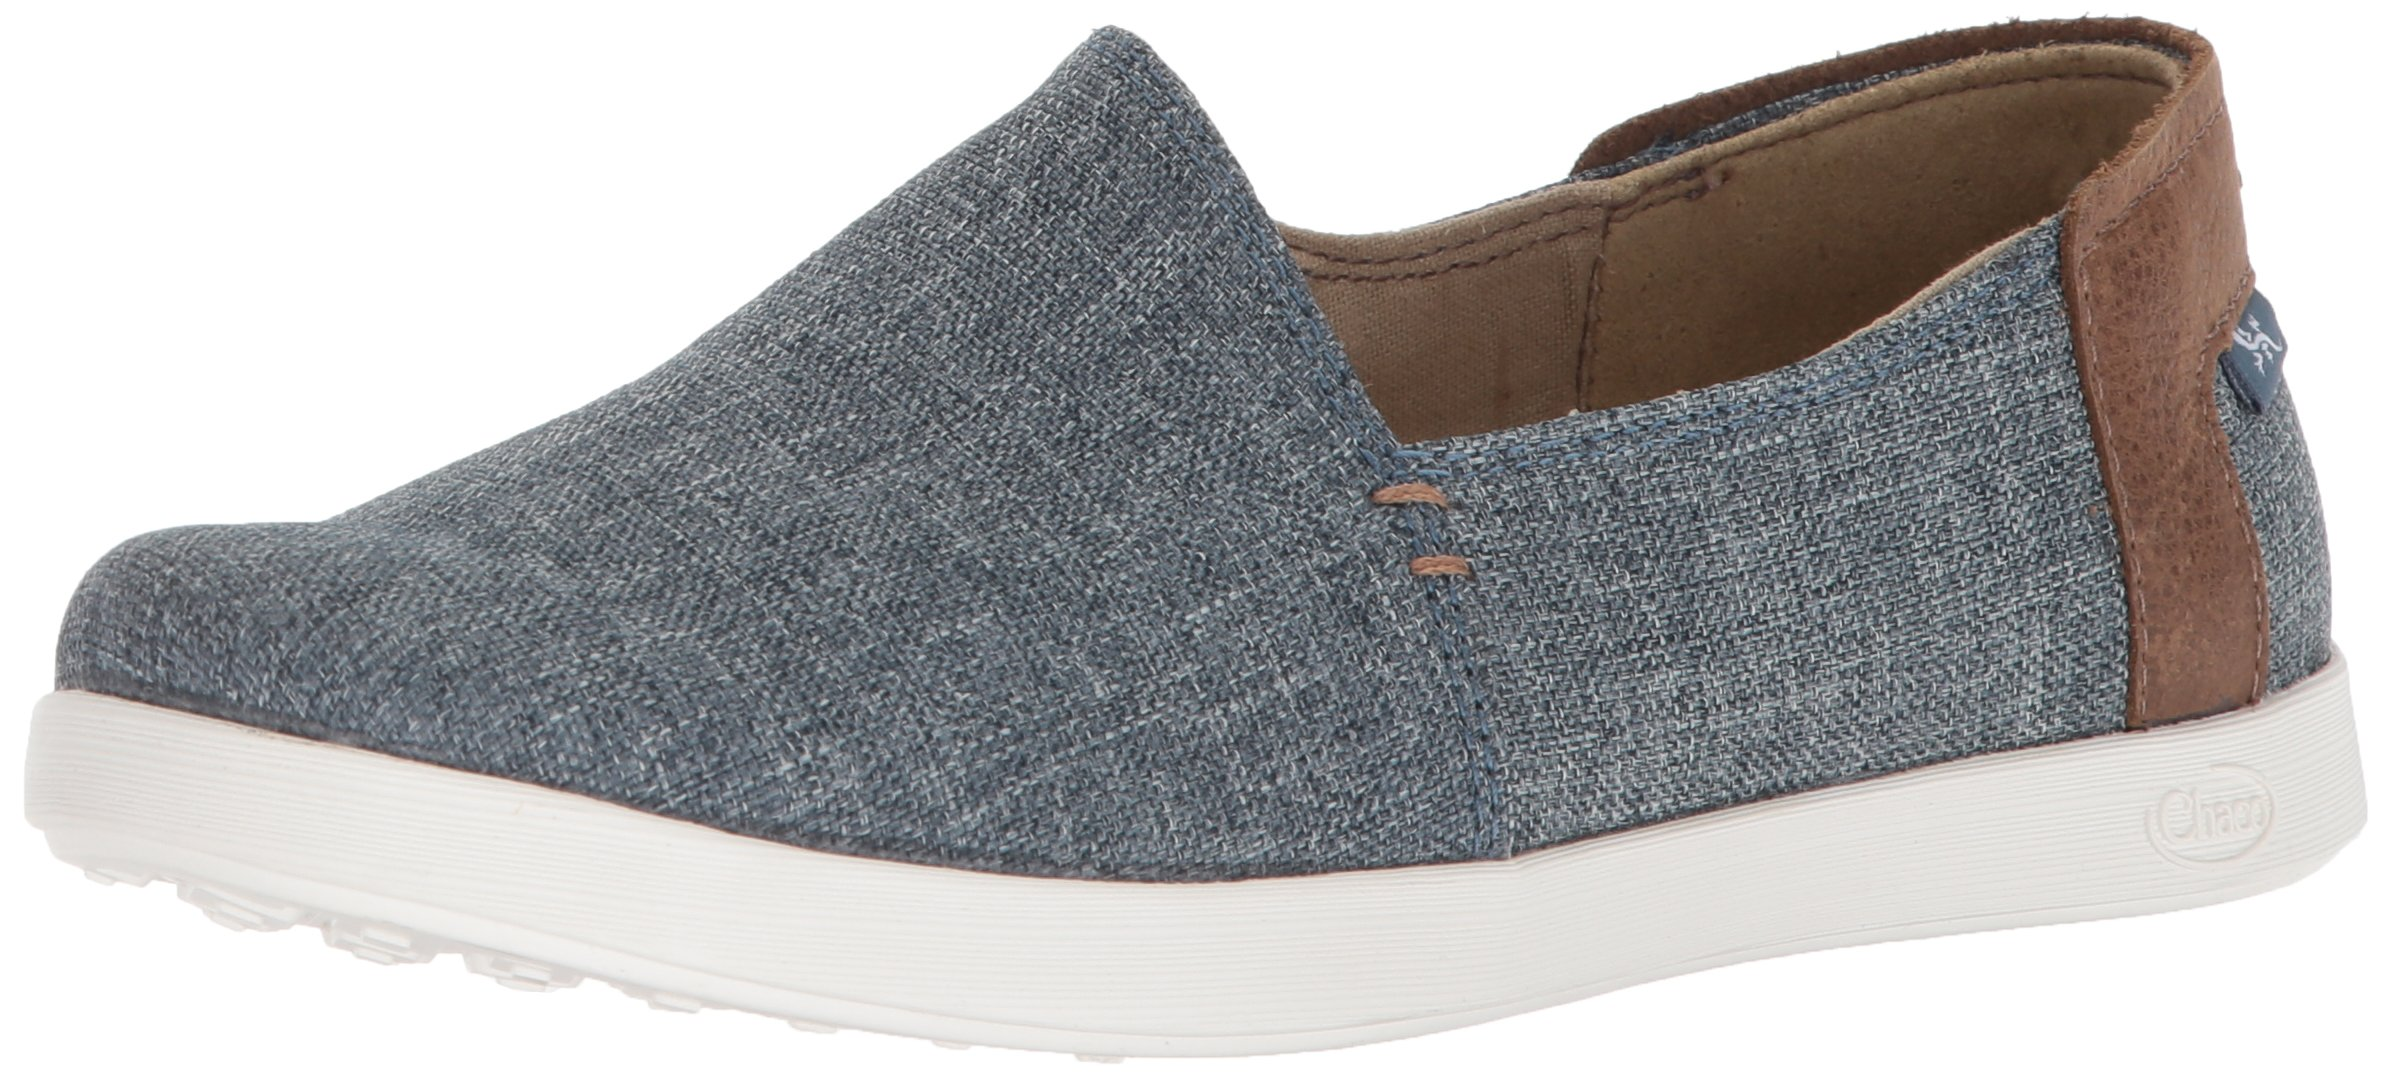 Chaco Women's Ionia Loafer Flat, Sand, 8 Medium US by Chaco